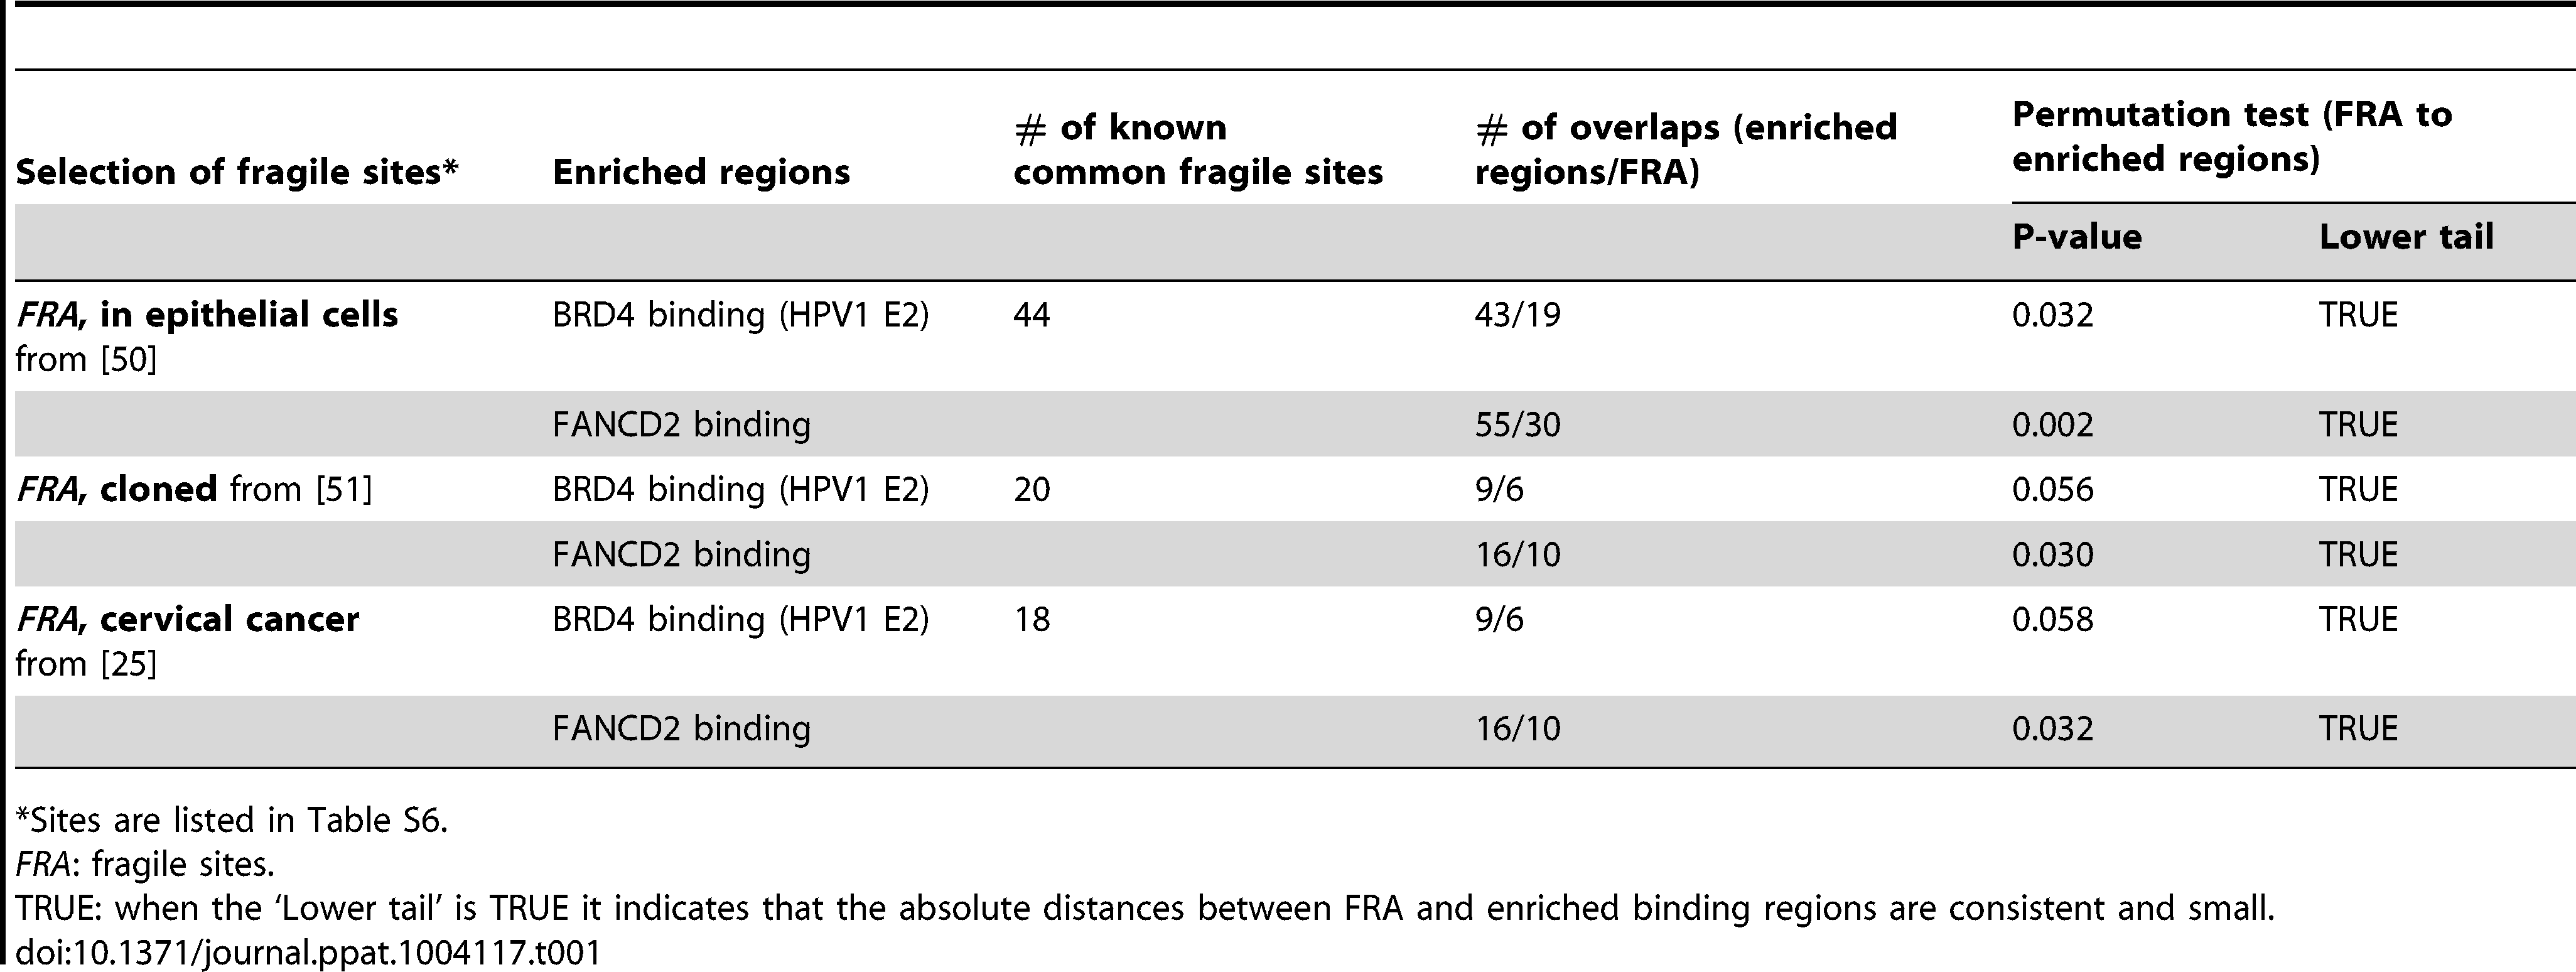 Association of common fragile sites with PEB-BLOCs and FANCD2 binding.